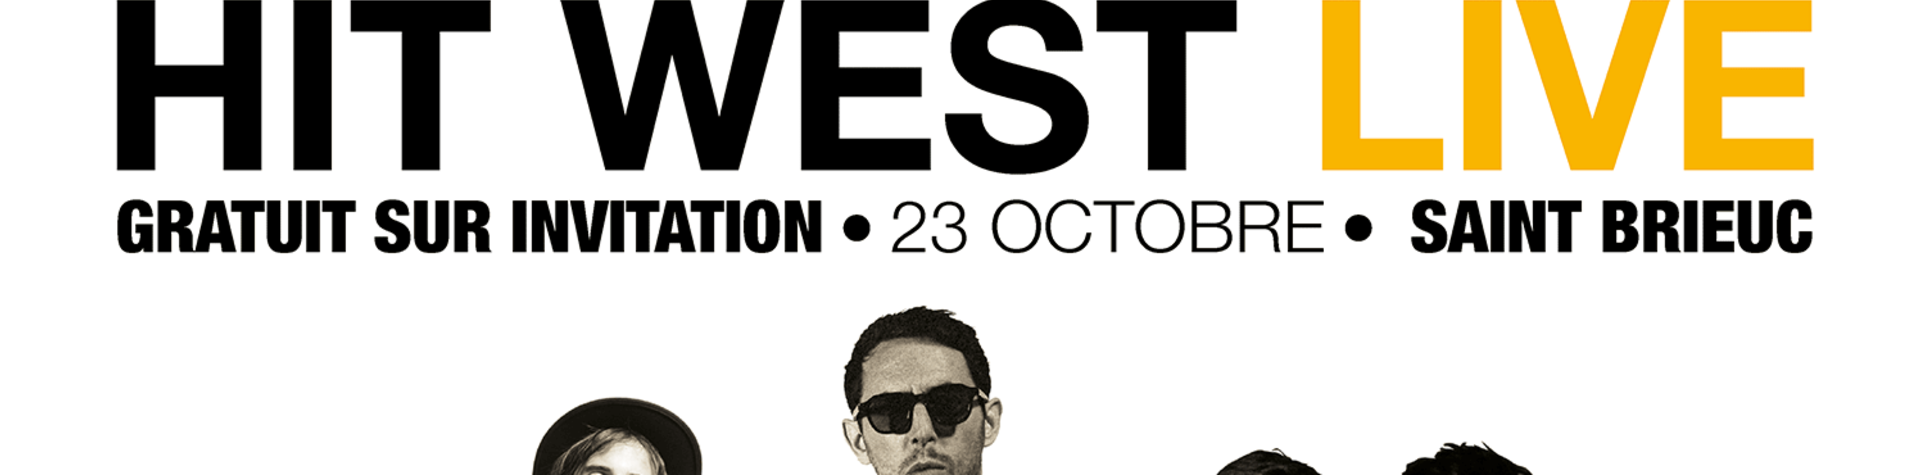 Hit west live 23 octobre palais des congres st brieuc hermione